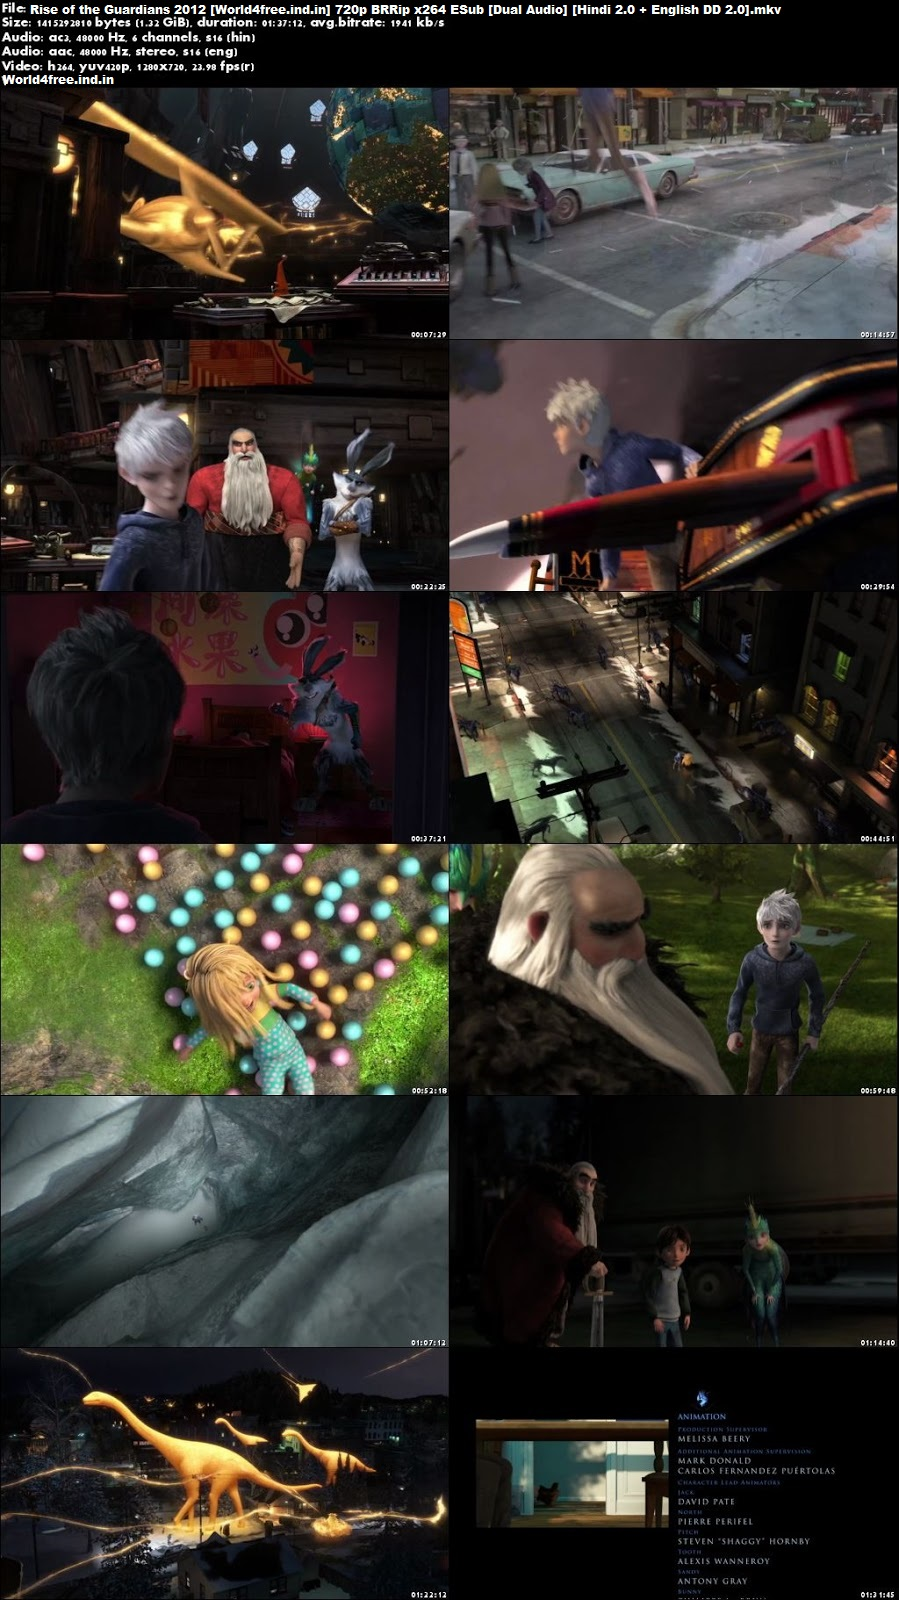 Rise of the Guardians 2012 world4free.ind.in BRRip 720p Dual Audio Download